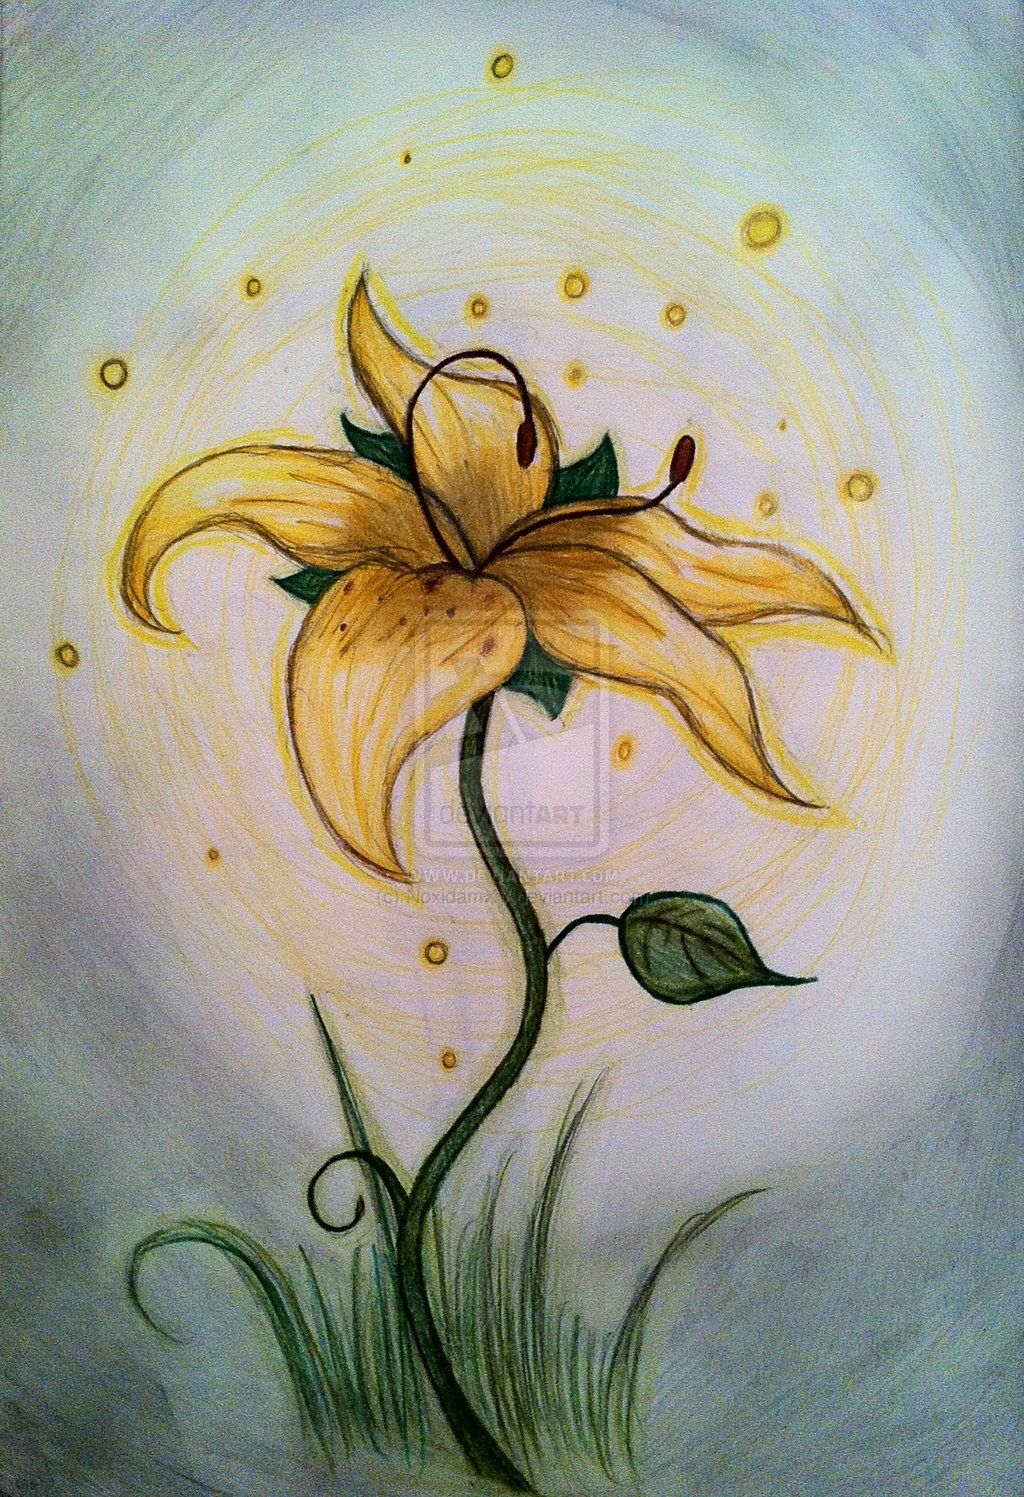 34 Awesome Tangled Flower Tattoo Images Disney Tangled Tattoo Tangled Flower Disney Sleeve Tattoos